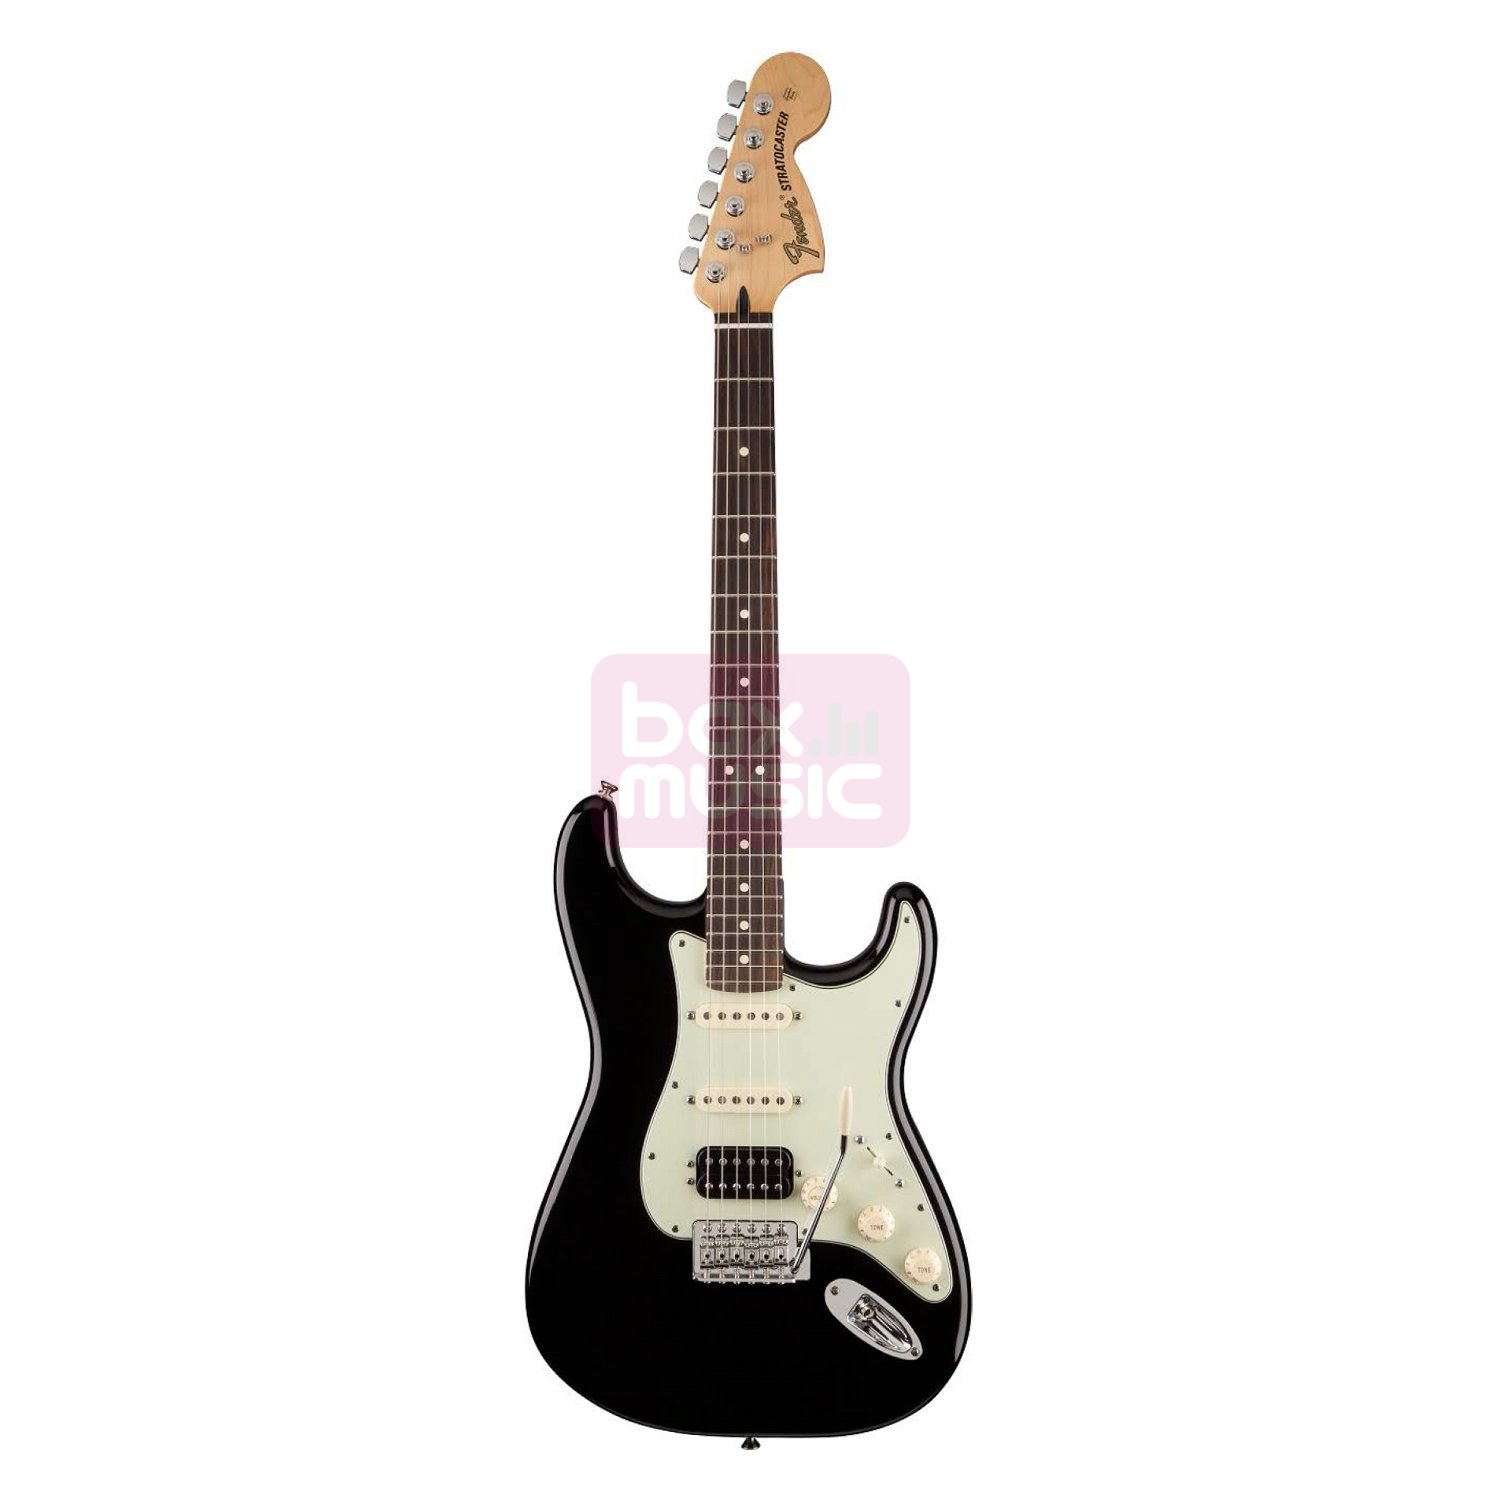 Fender Deluxe Lone Star Stratocaster Black RW 2013